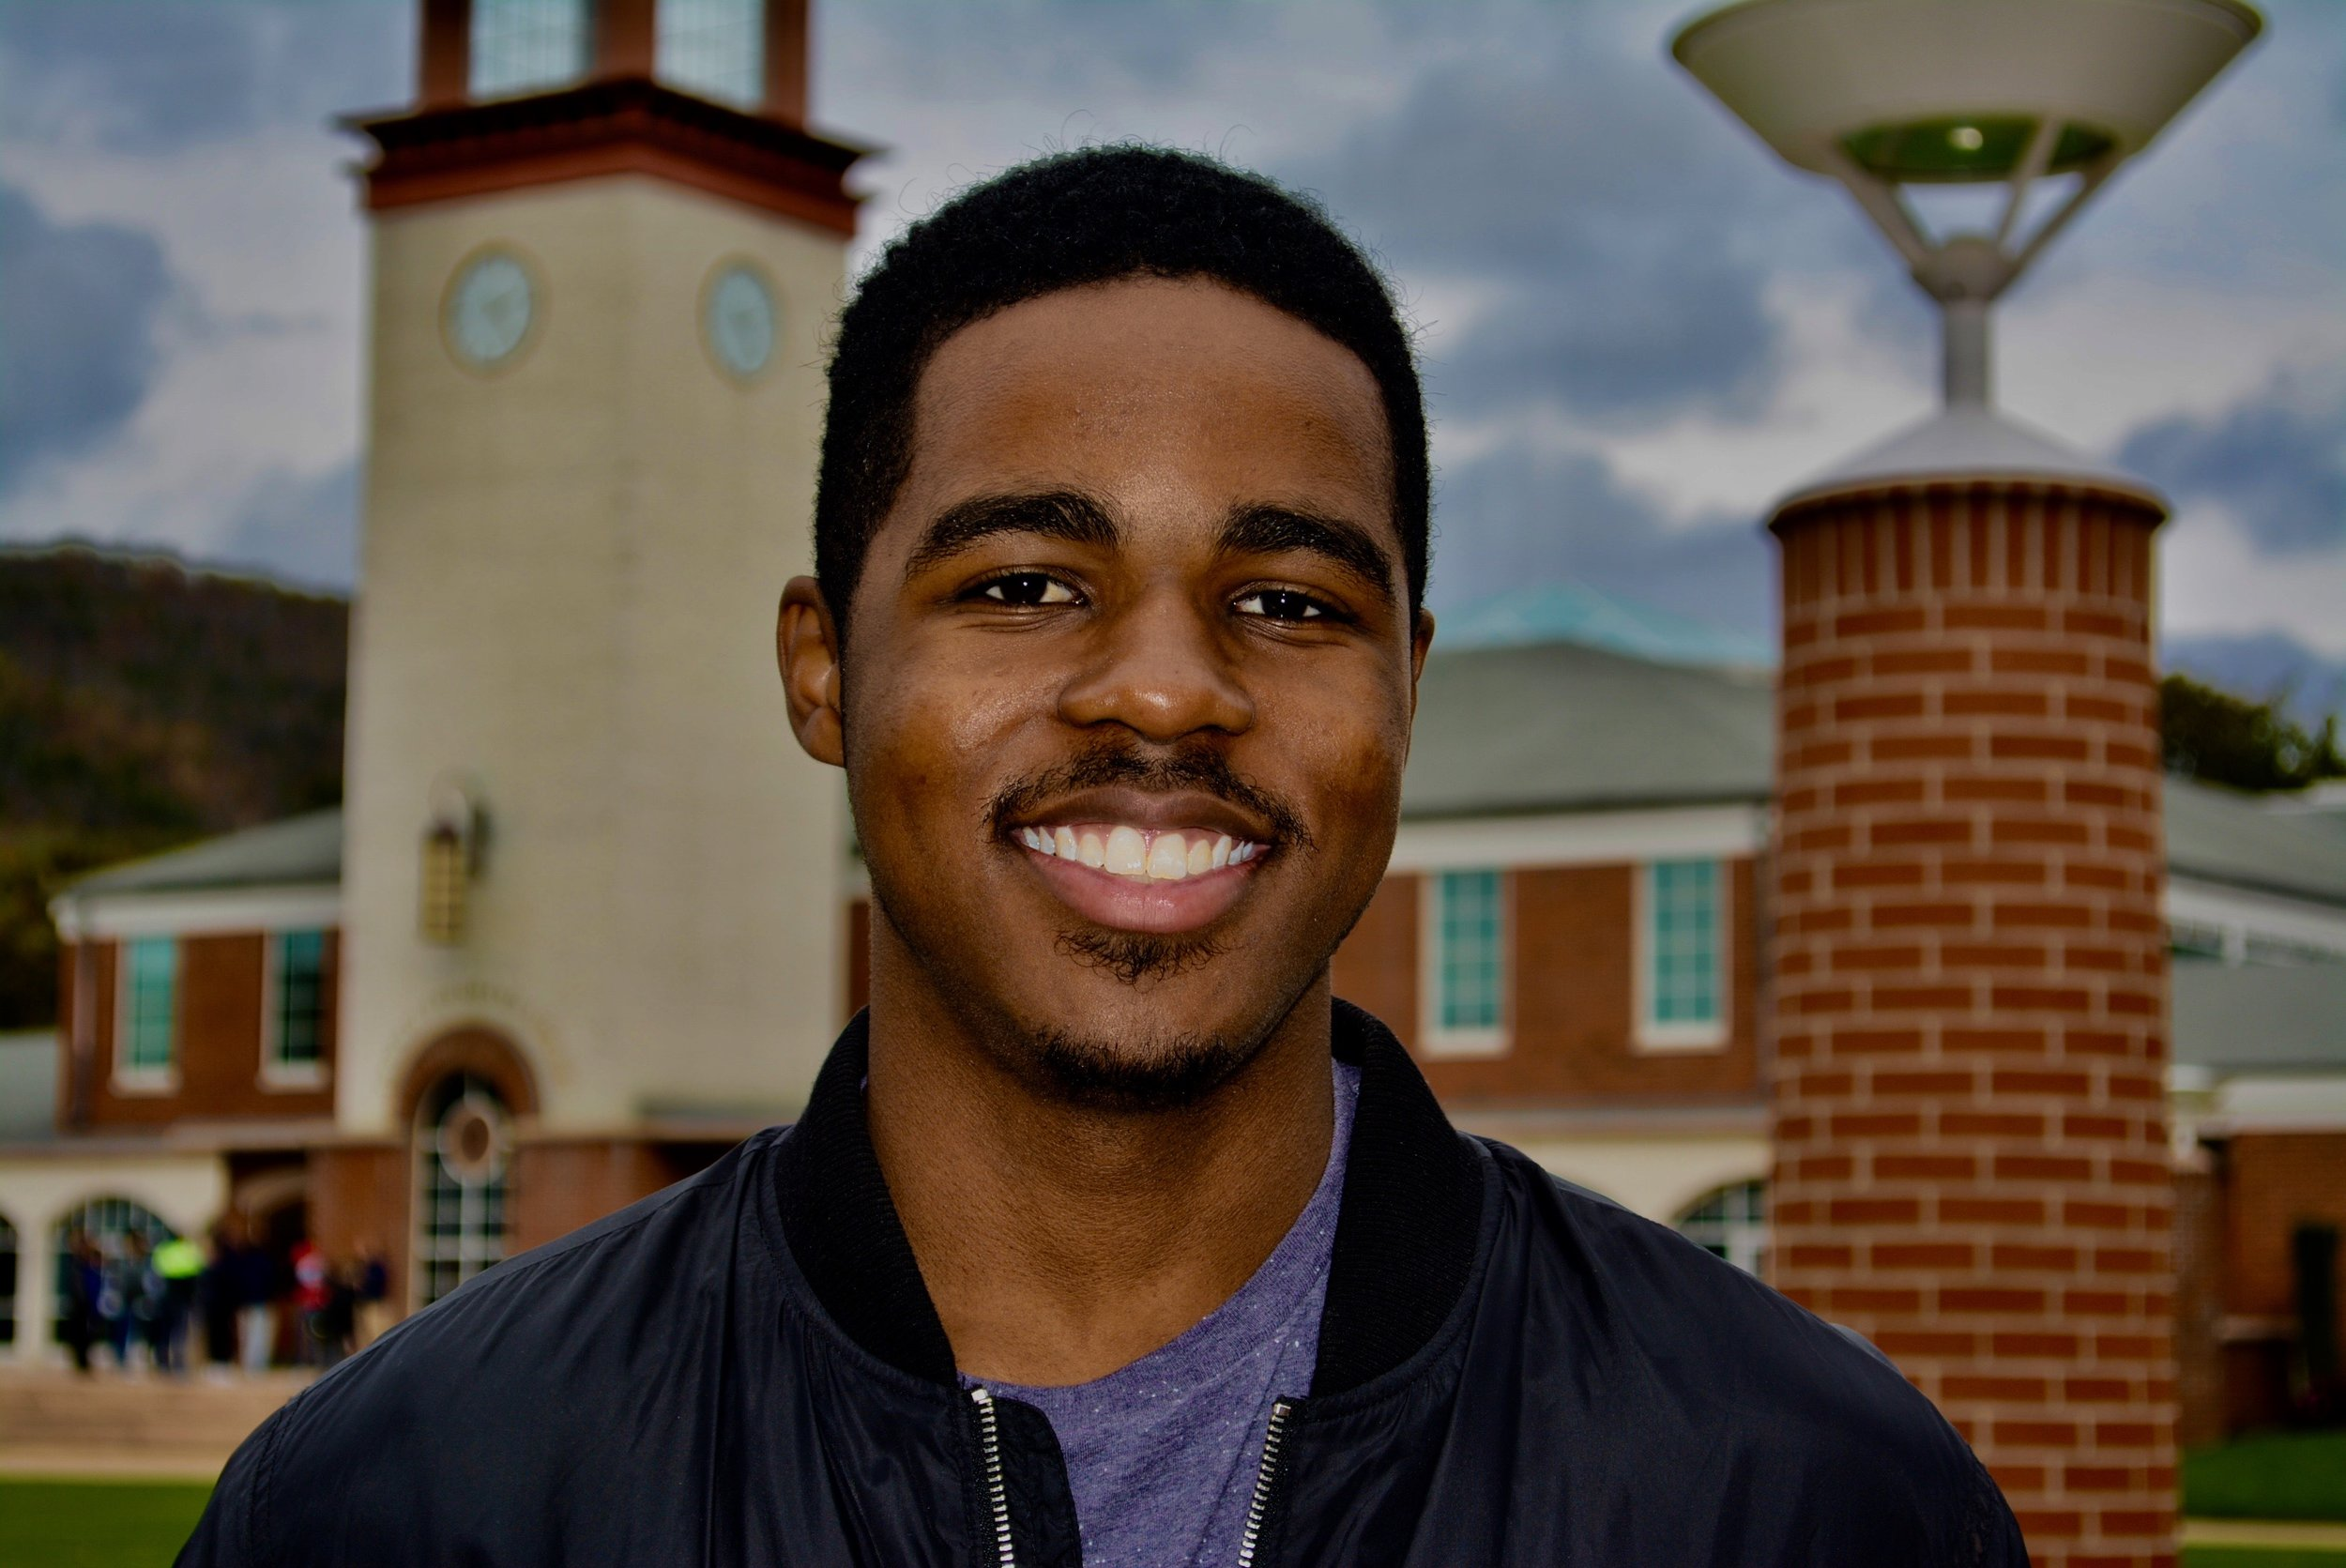 Warren Webb,Jamaica,20,Computer information systems - I don't think I had an idea before coming here. I've always been surrounded by majority black people so I always thought that was a thing everywhere else. I thought there would have been an equal population and an equal distribution of population. At Quinnipiac, I would say my idea of diversity doesn't really encompass race and stuff like that. It goes more towards different people who think differently. I feel like a lot of the students at QU have this one mindset, most of them not all, that if it doesn't affect me then it doesn't matter.